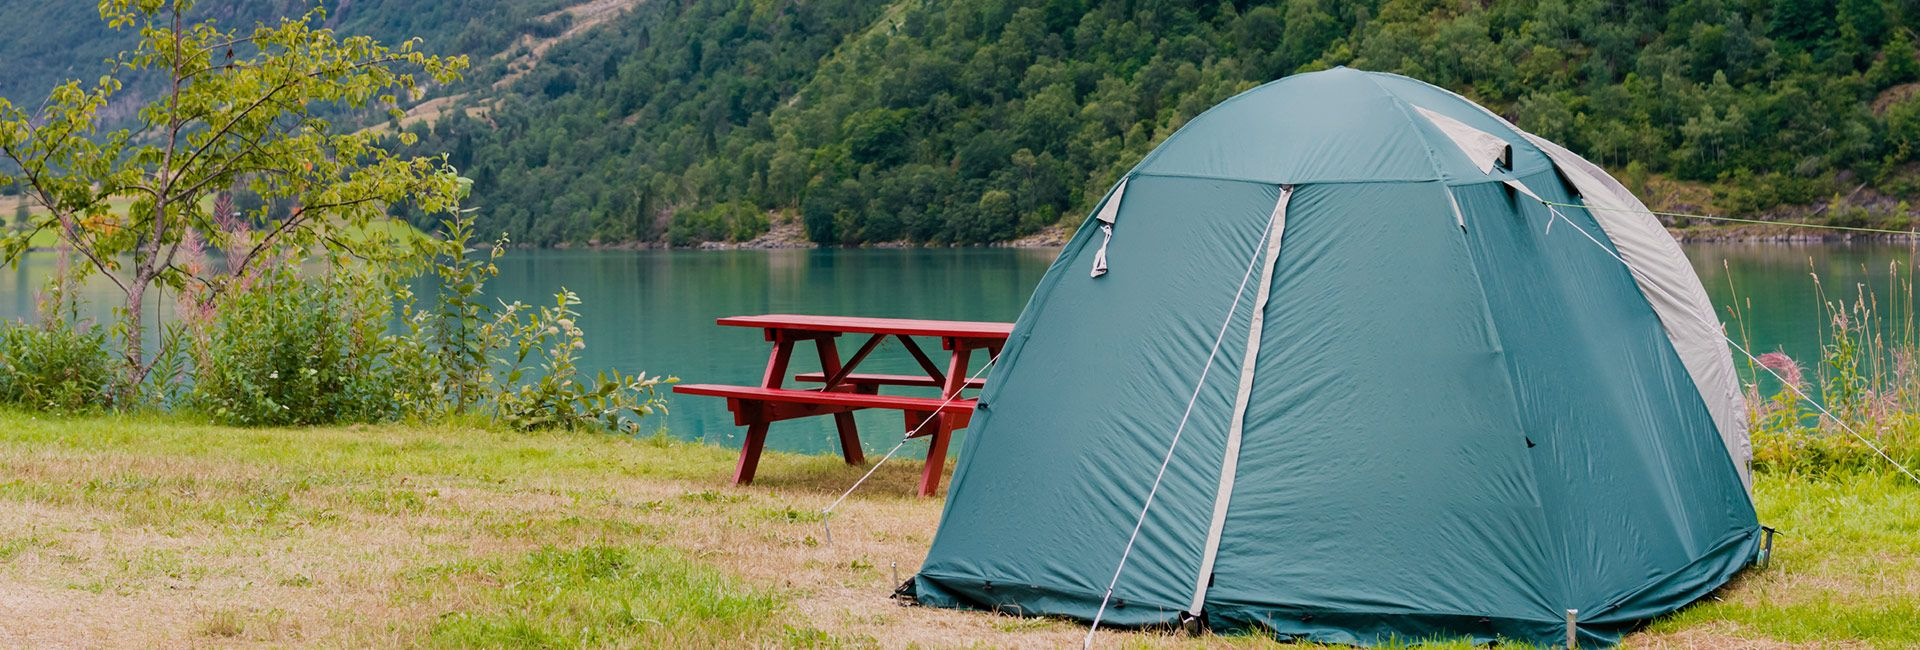 blindfold tent pitching